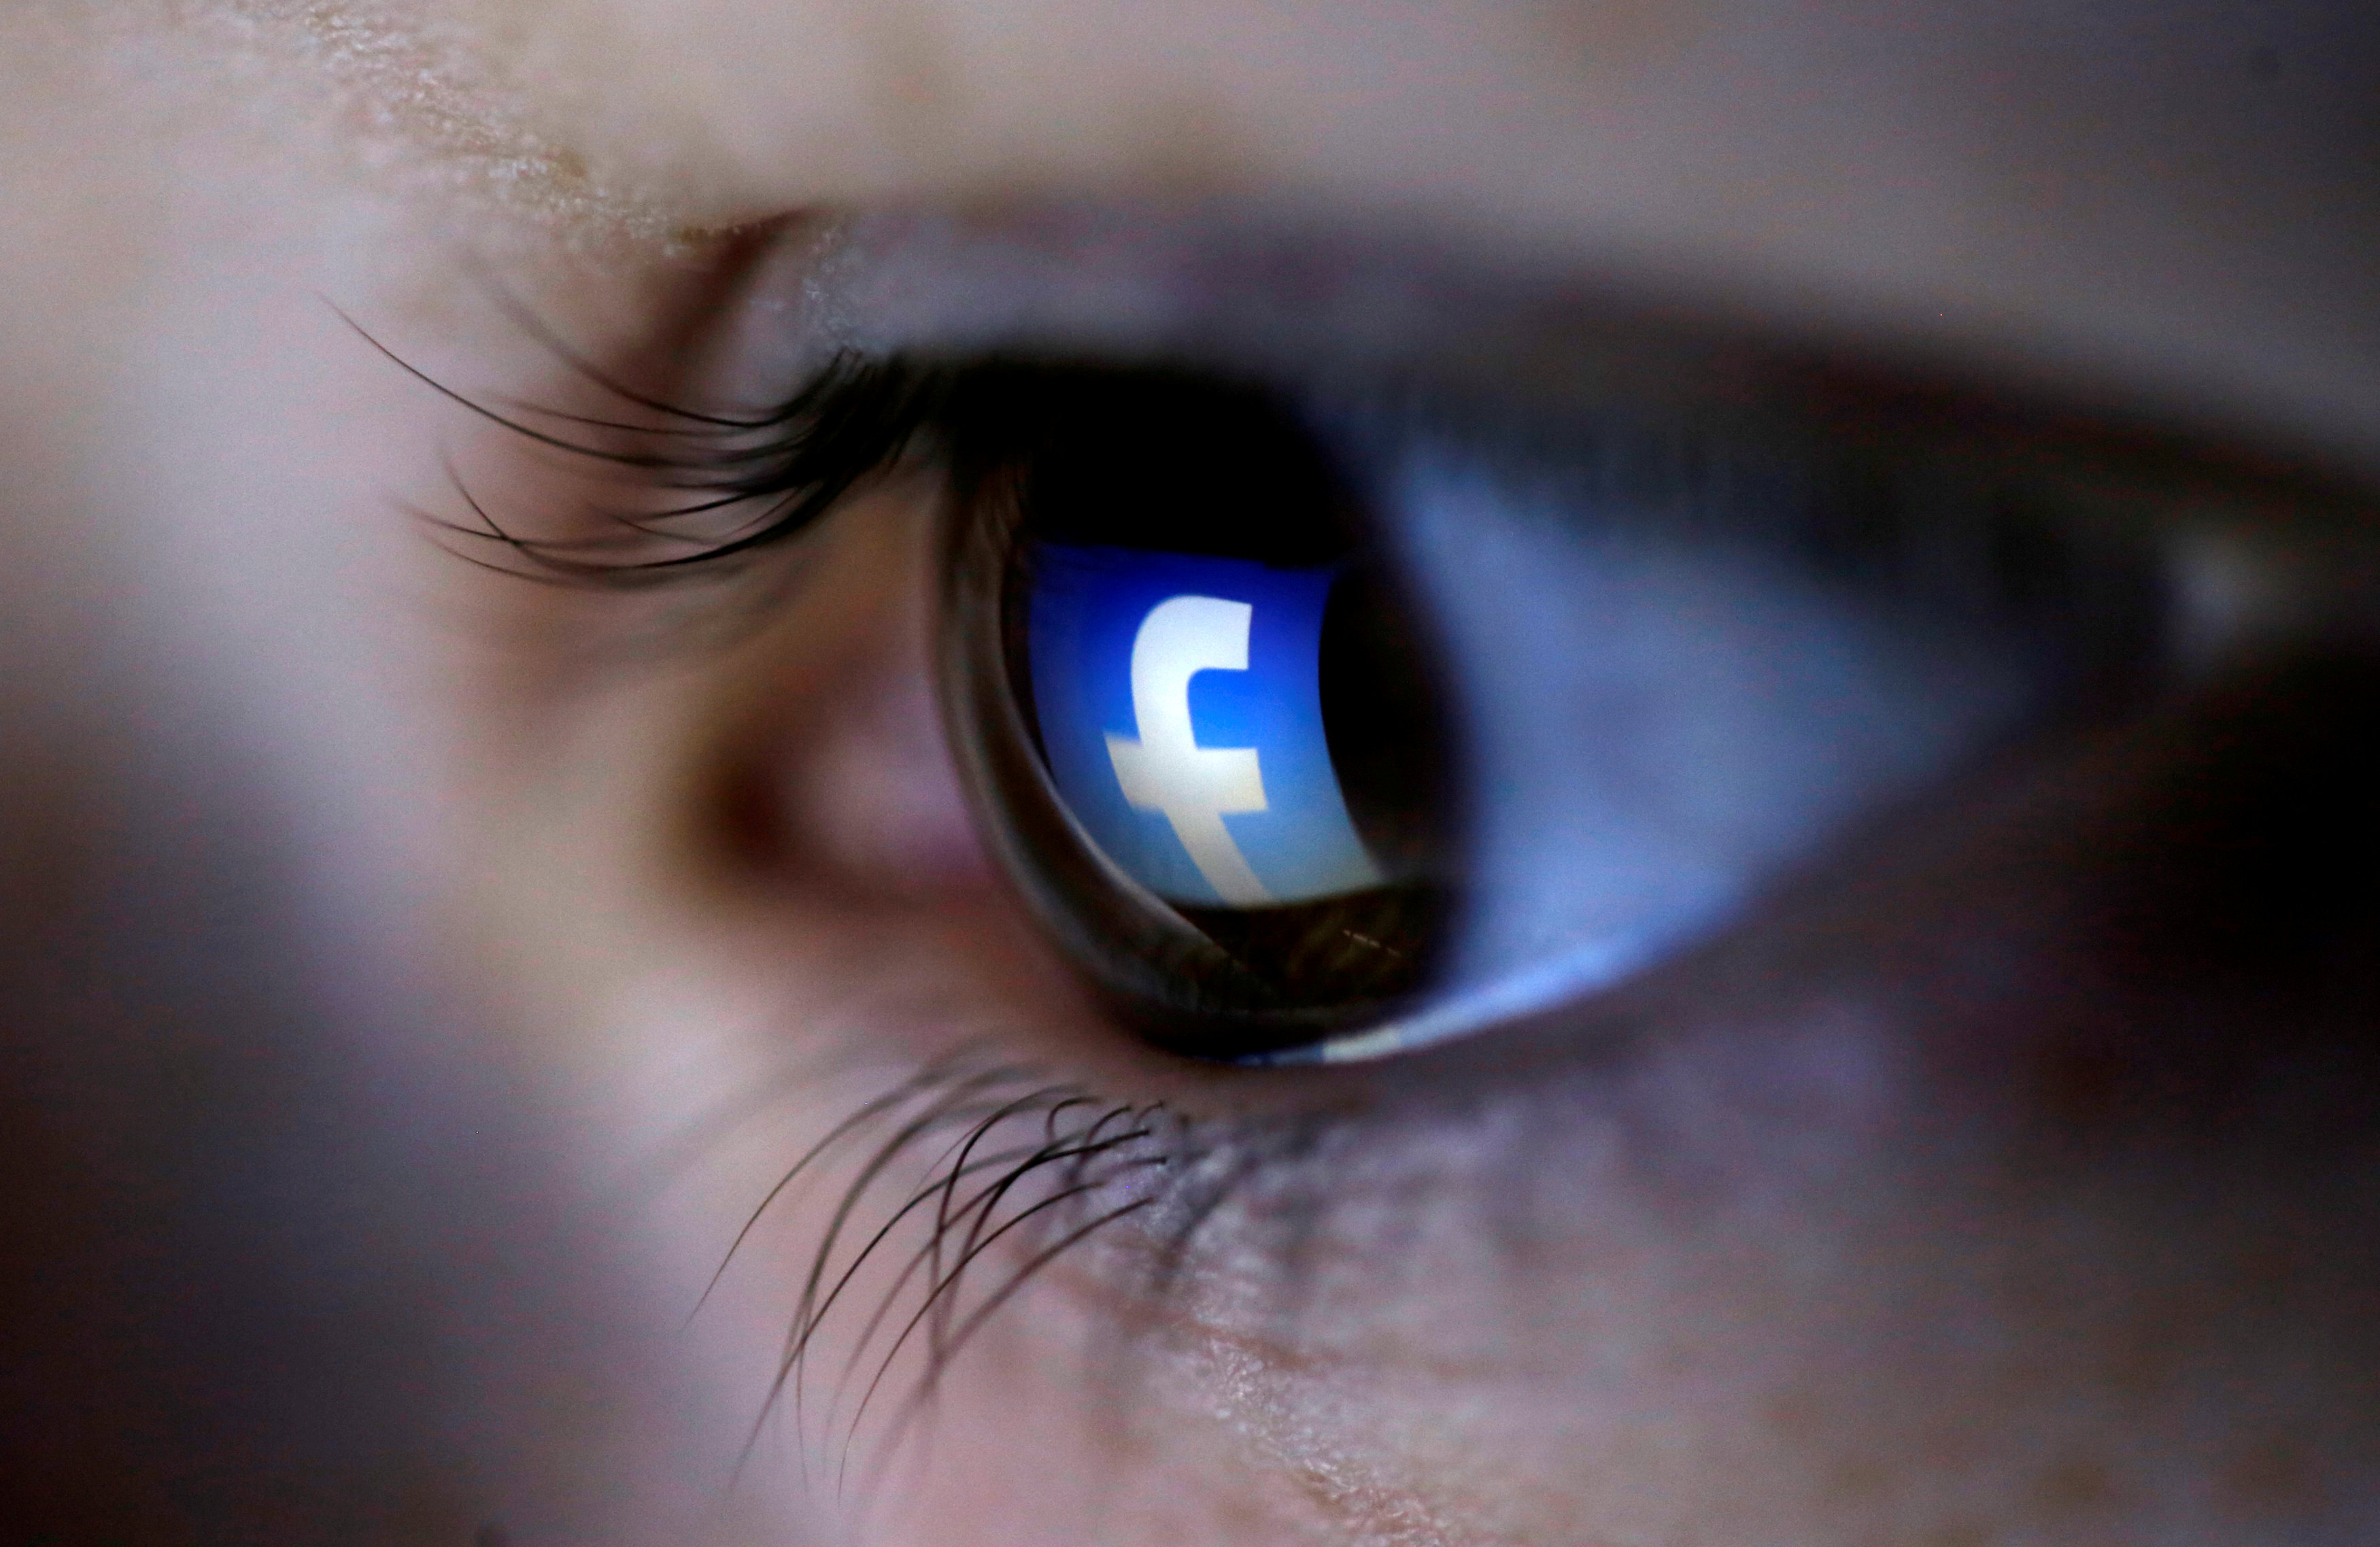 From the 1,100 respondents polled, 70 per cent voted Facebook as the preferred platform for information. — Reuters pic